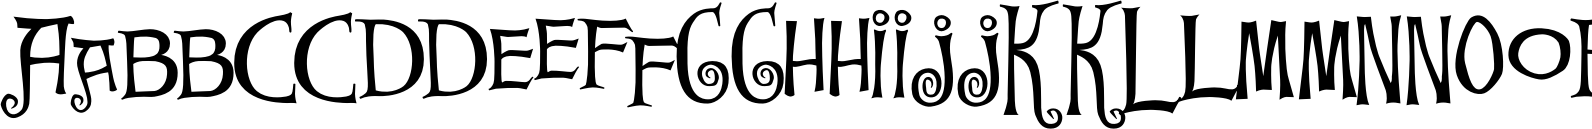 Chicken King Font